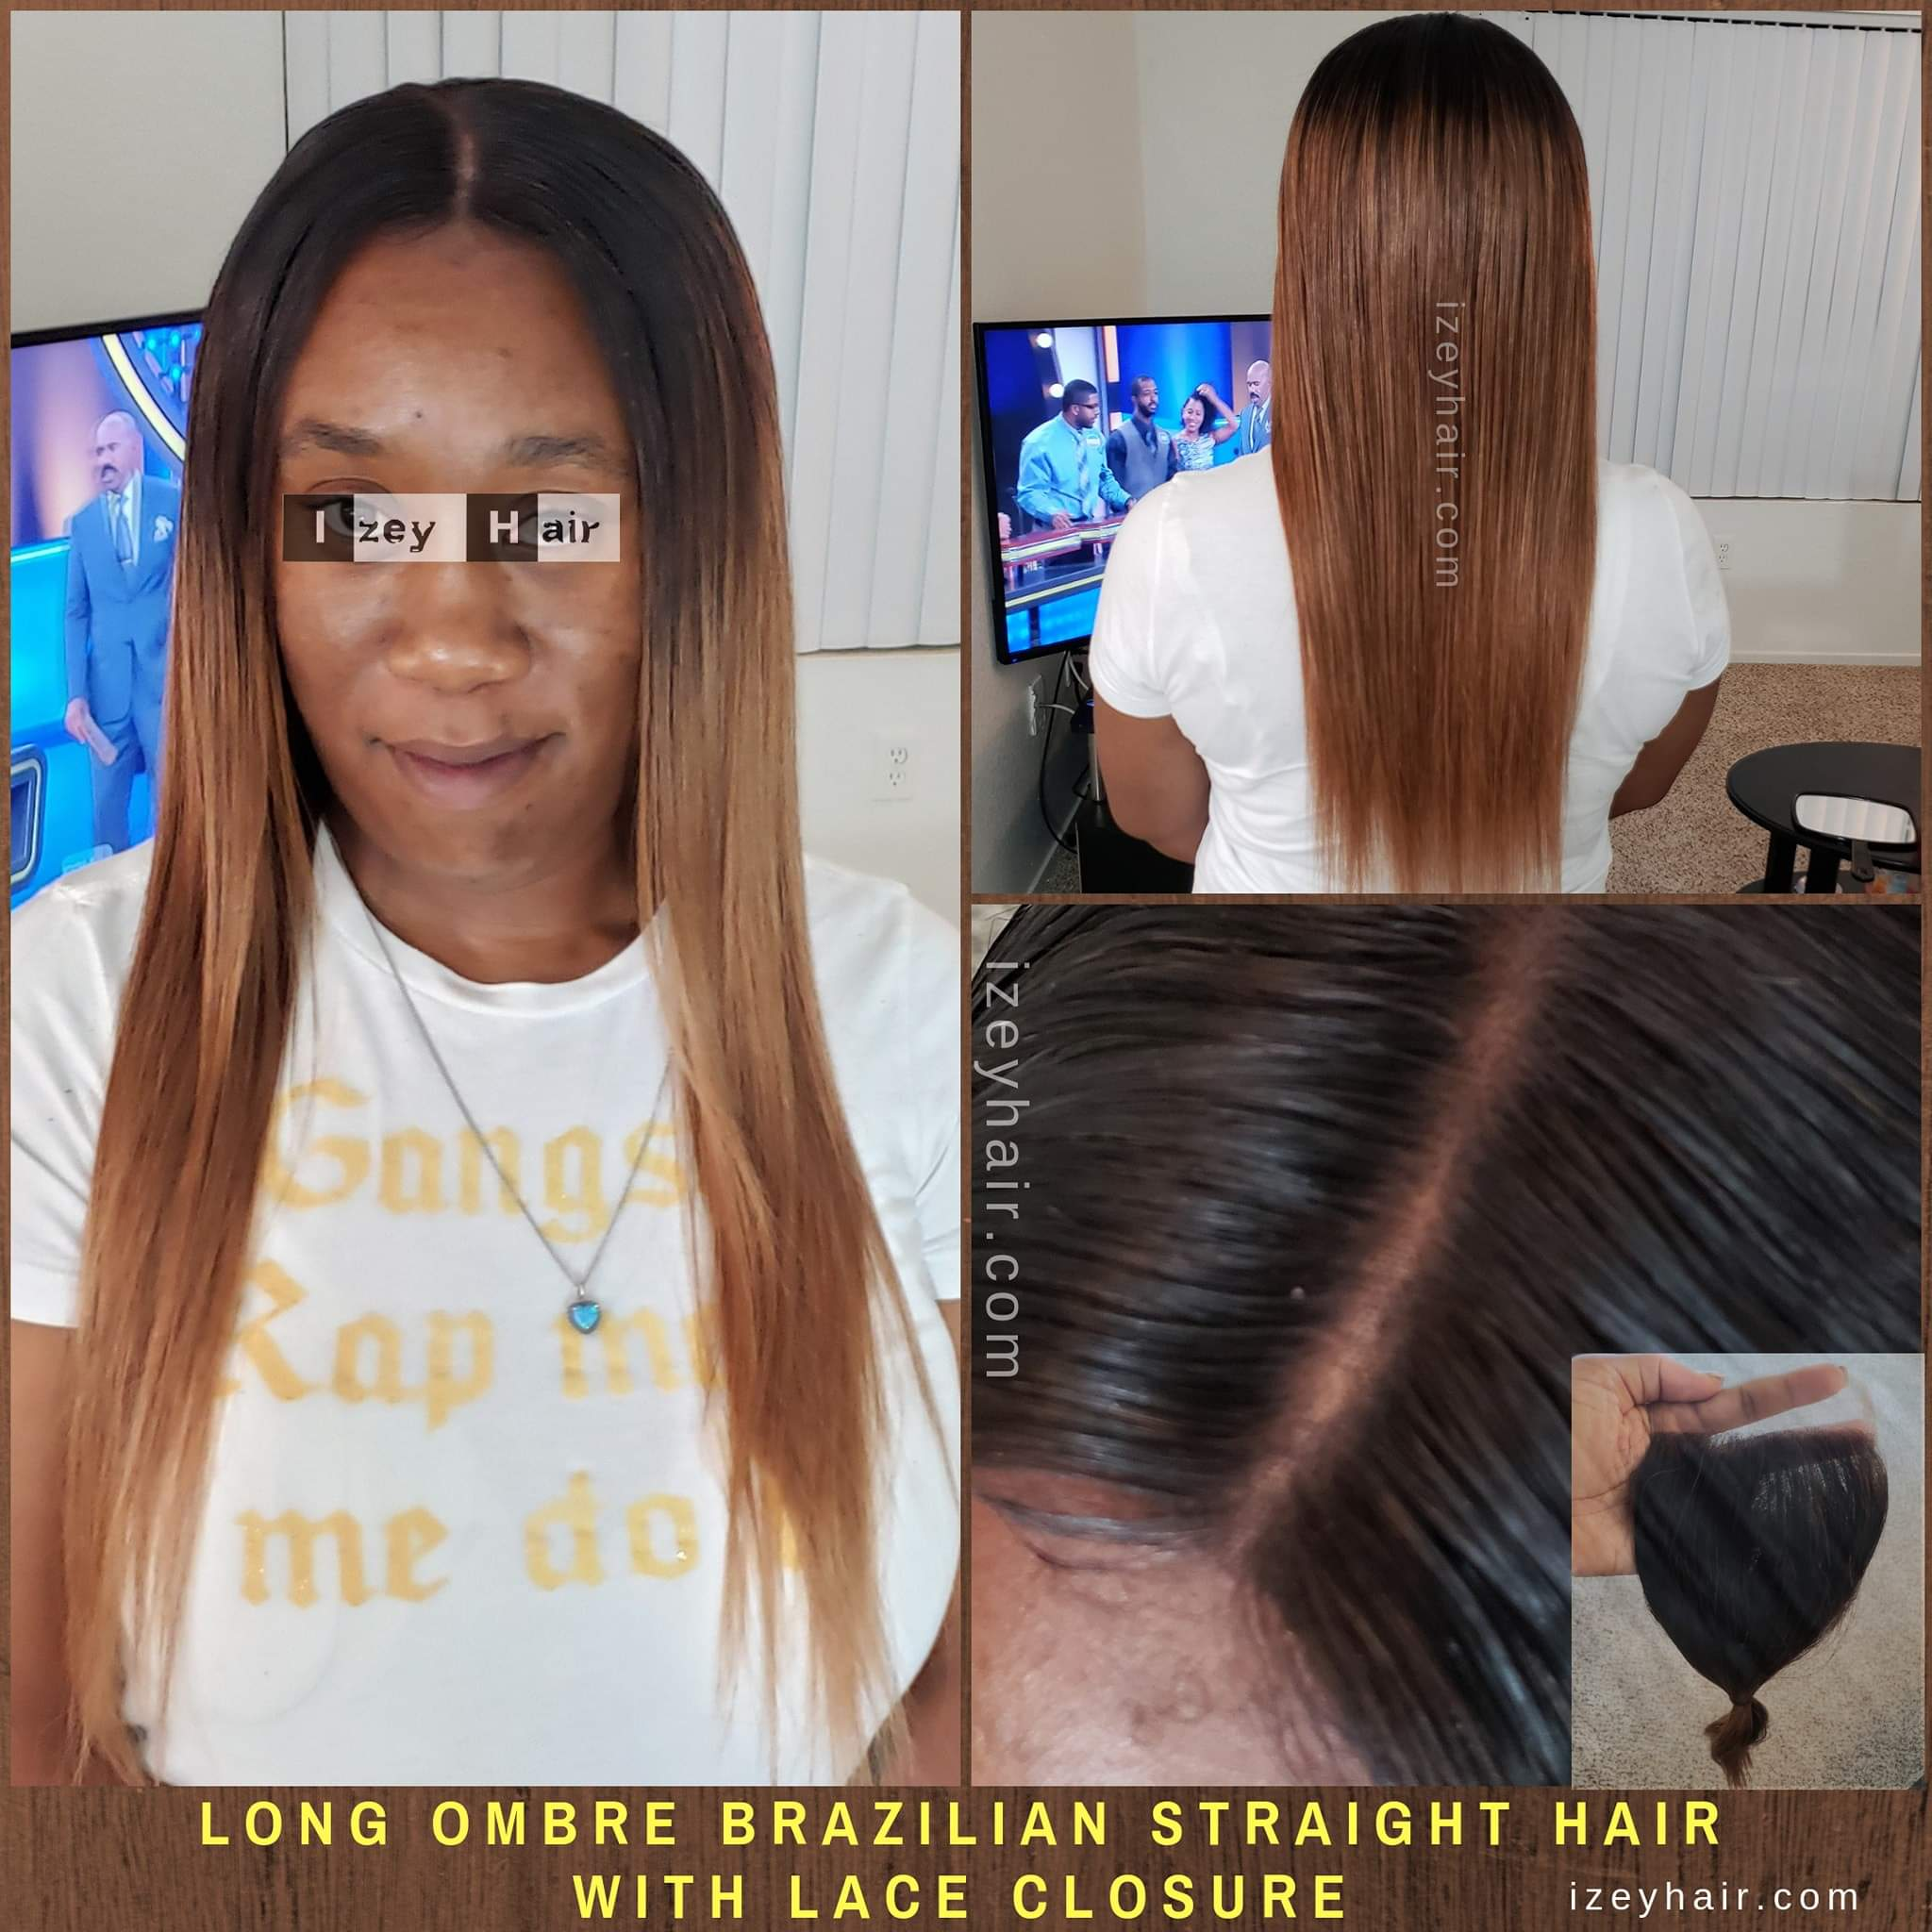 Long Ombre Brazilian Straight Hair with Lace Closure - Colors Black and Blond